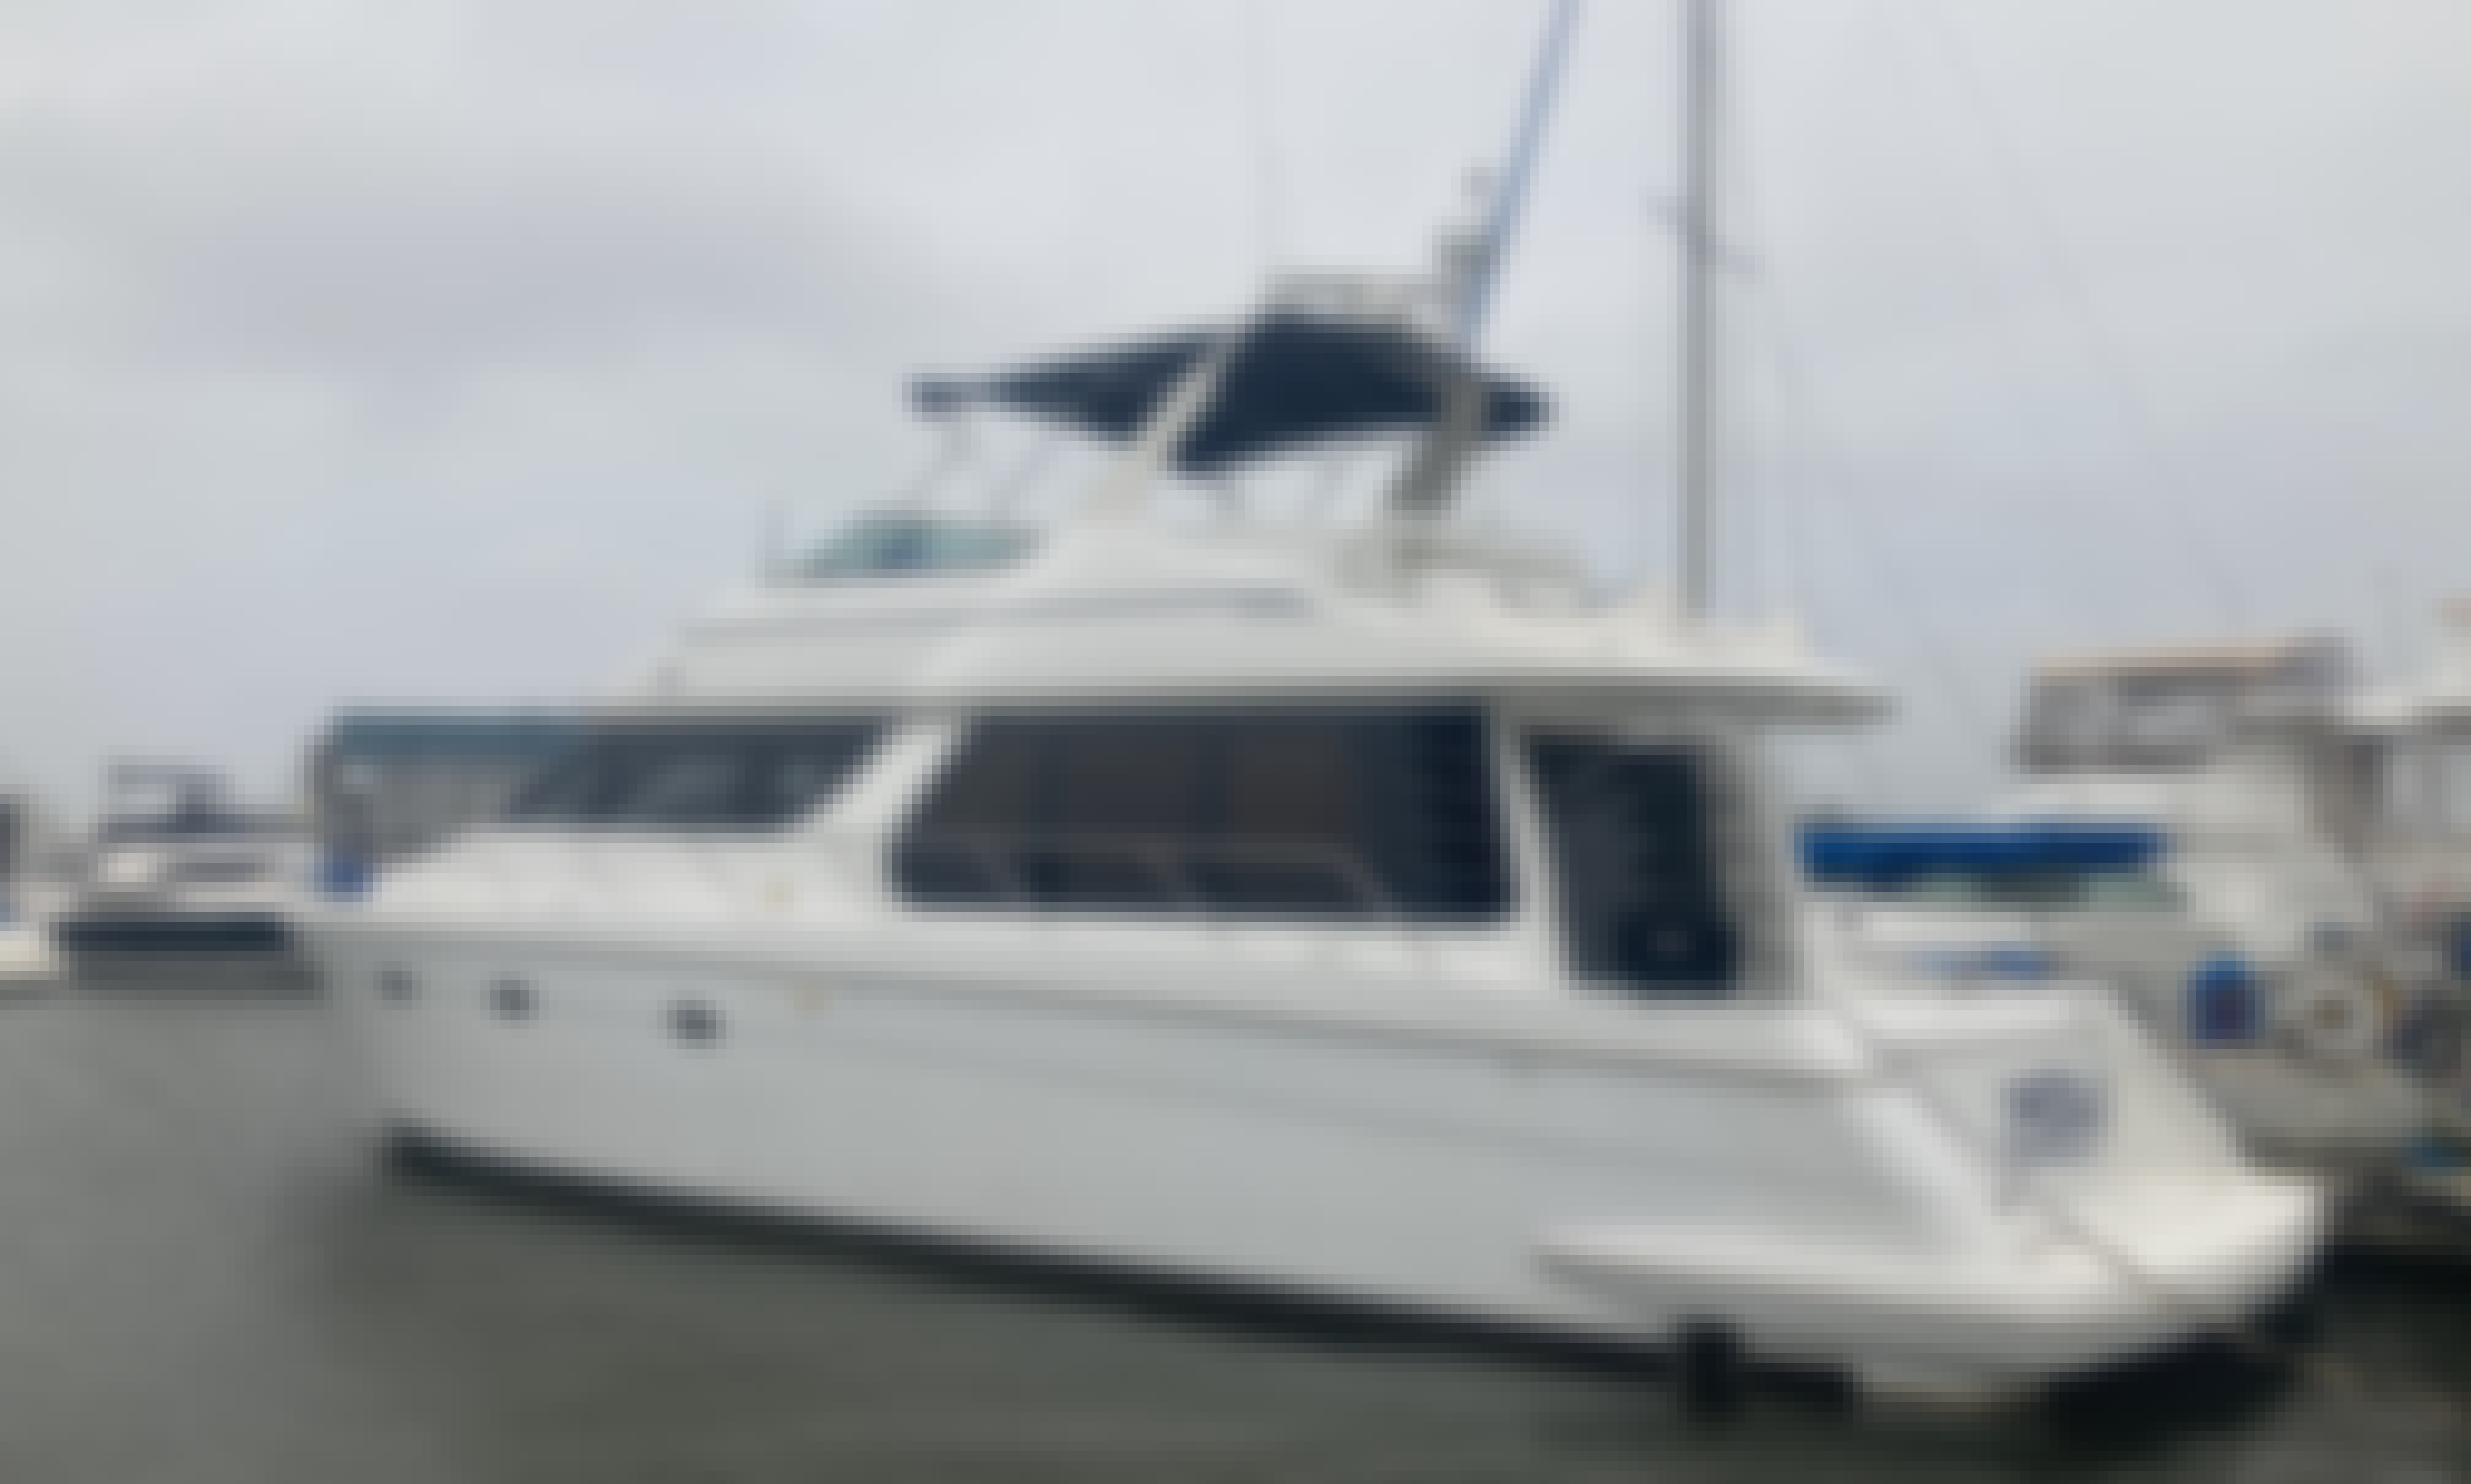 2004 Carver 53' Yacht for Charter in Galveston